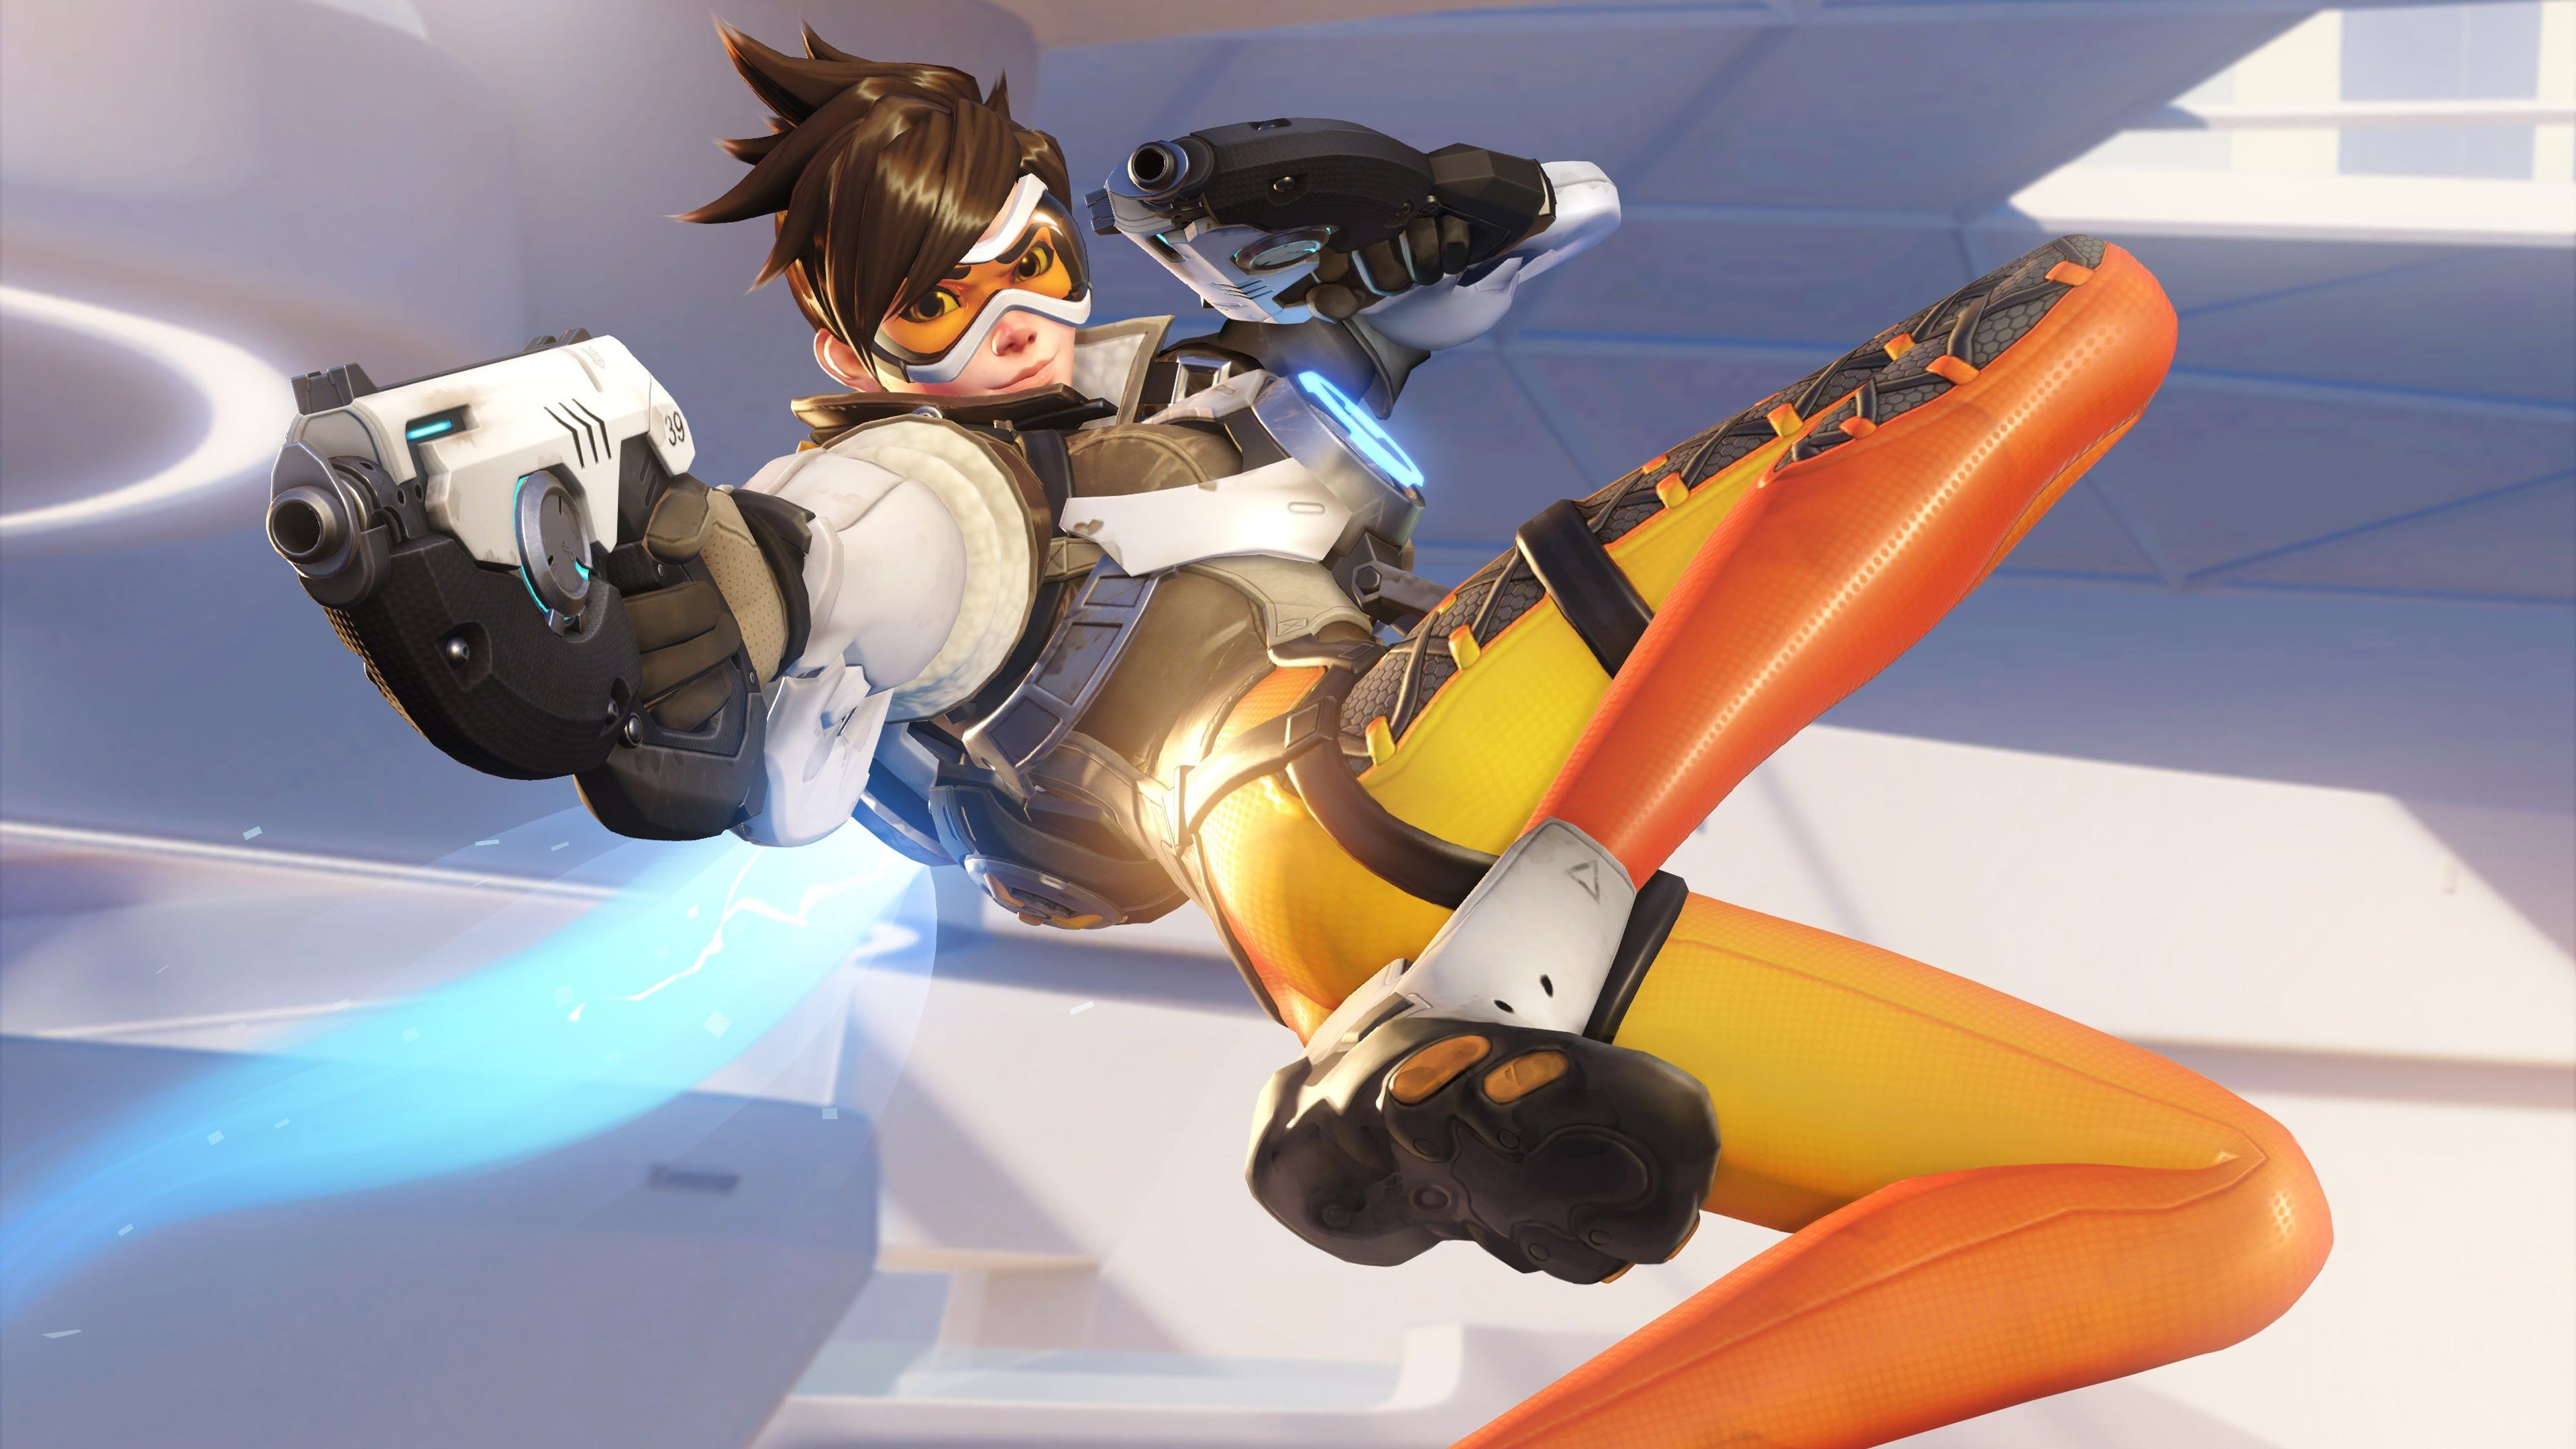 Video Game Overwatch Tracer Overwatch Wallpaper Overwatch Tracer Overwatch Overwatch Wallpapers